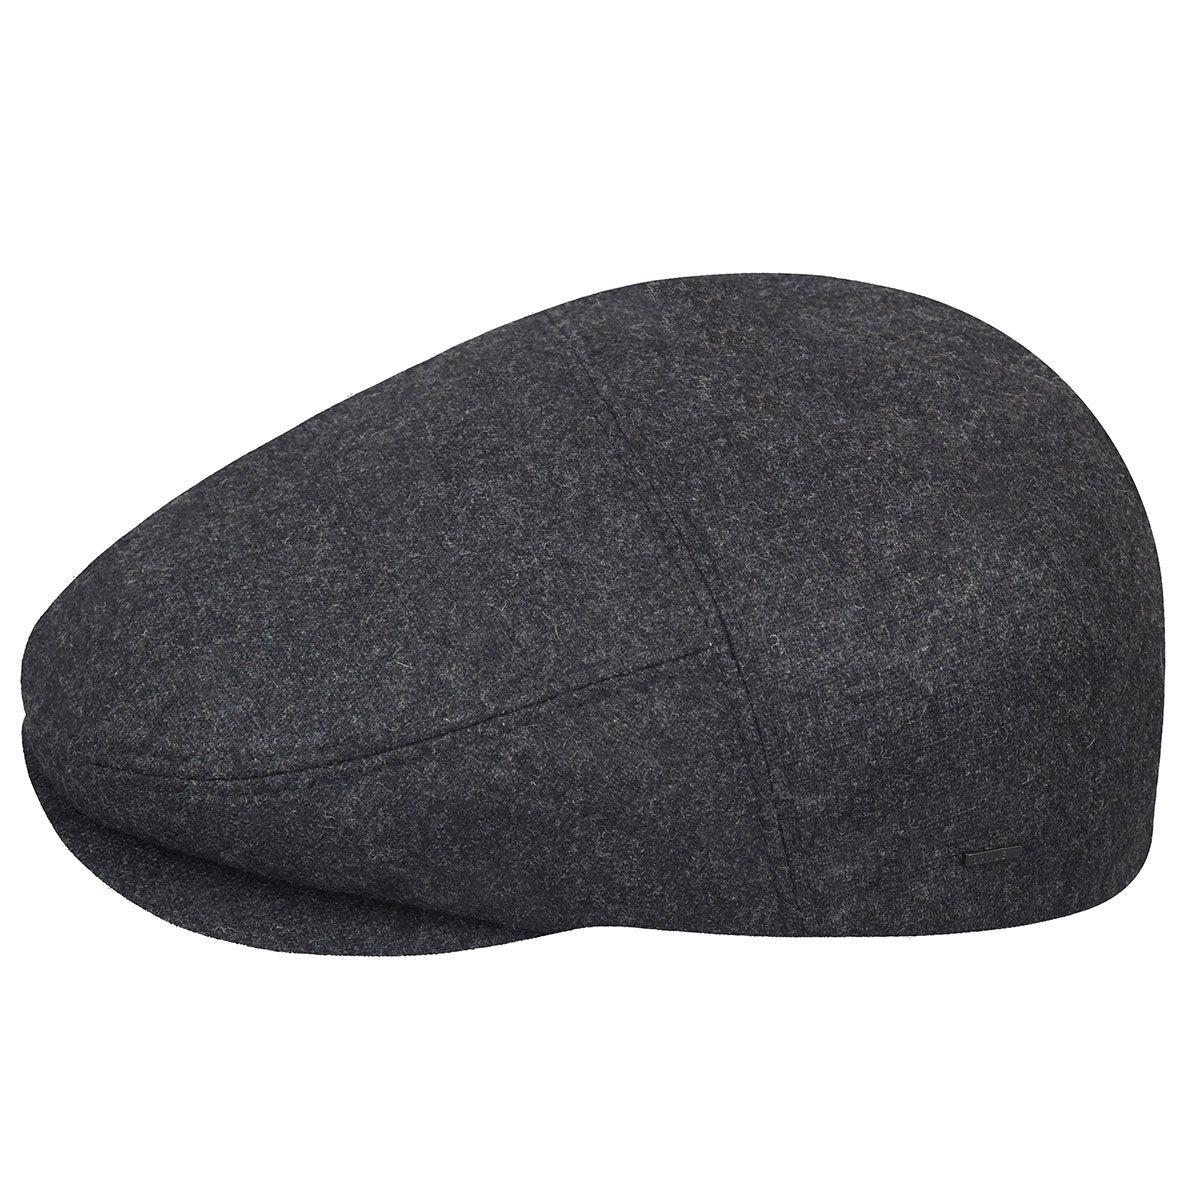 Bailey of Hollywood Farrow Ivy Cap in Charcoal,Black